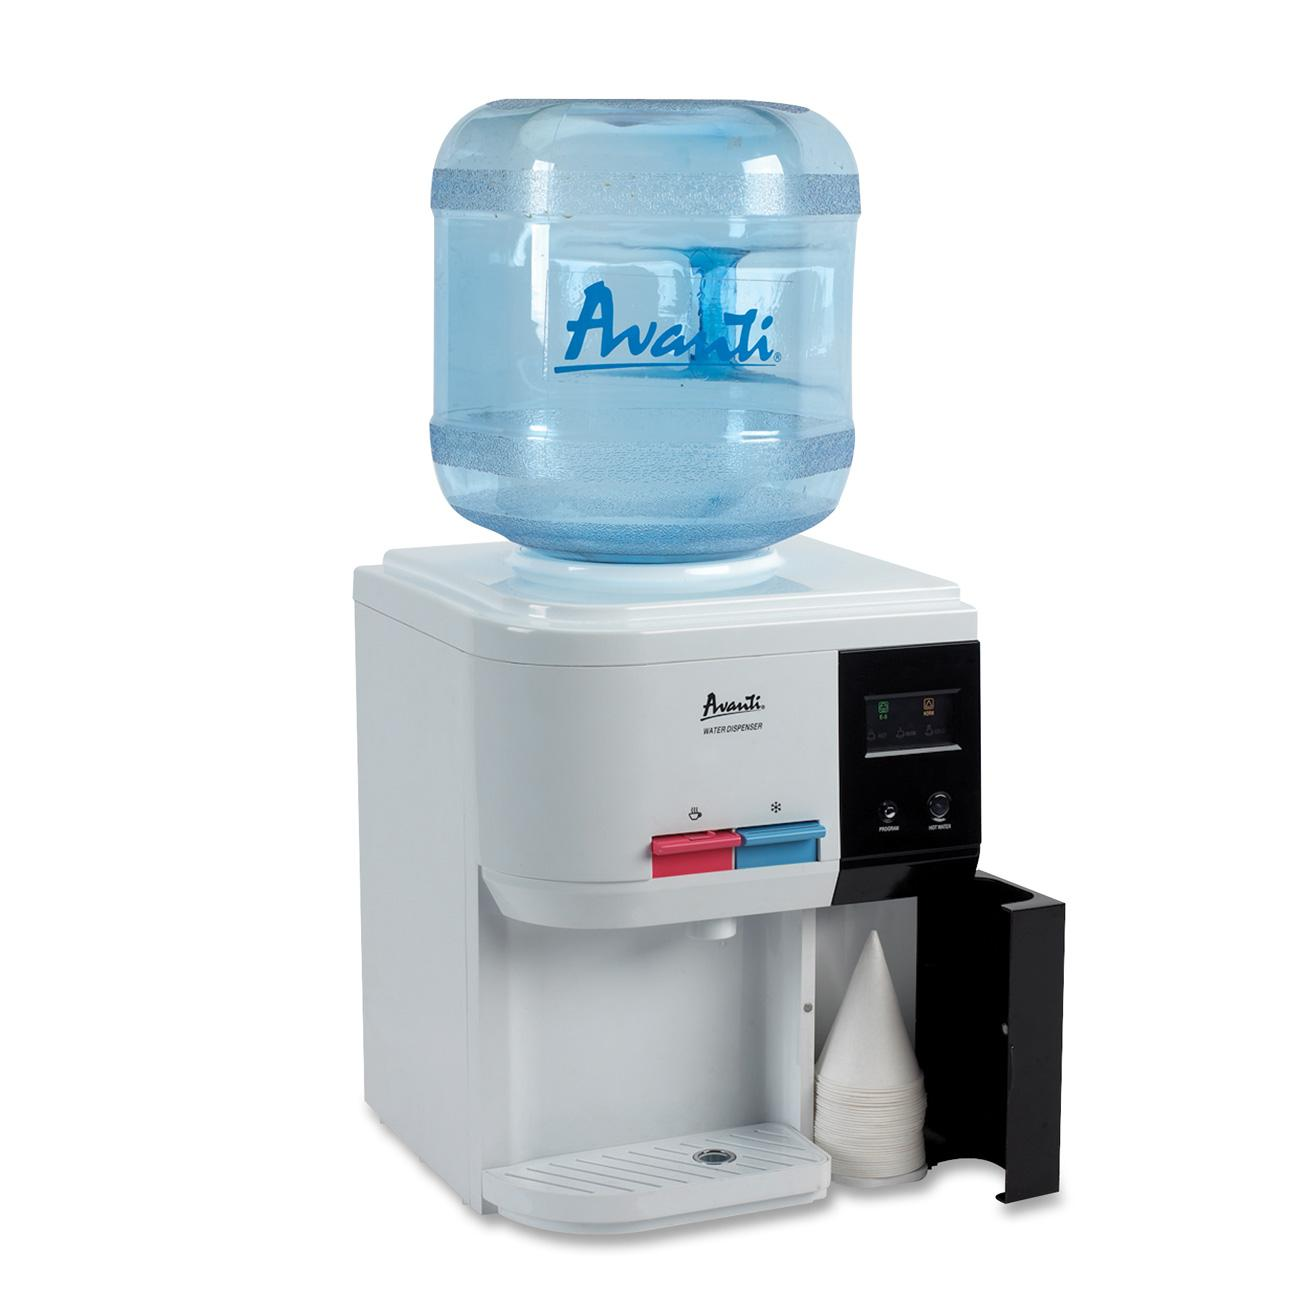 Avanti, AVAWD31EC, Table Top Thermoelectric Water Cooler, 1, White